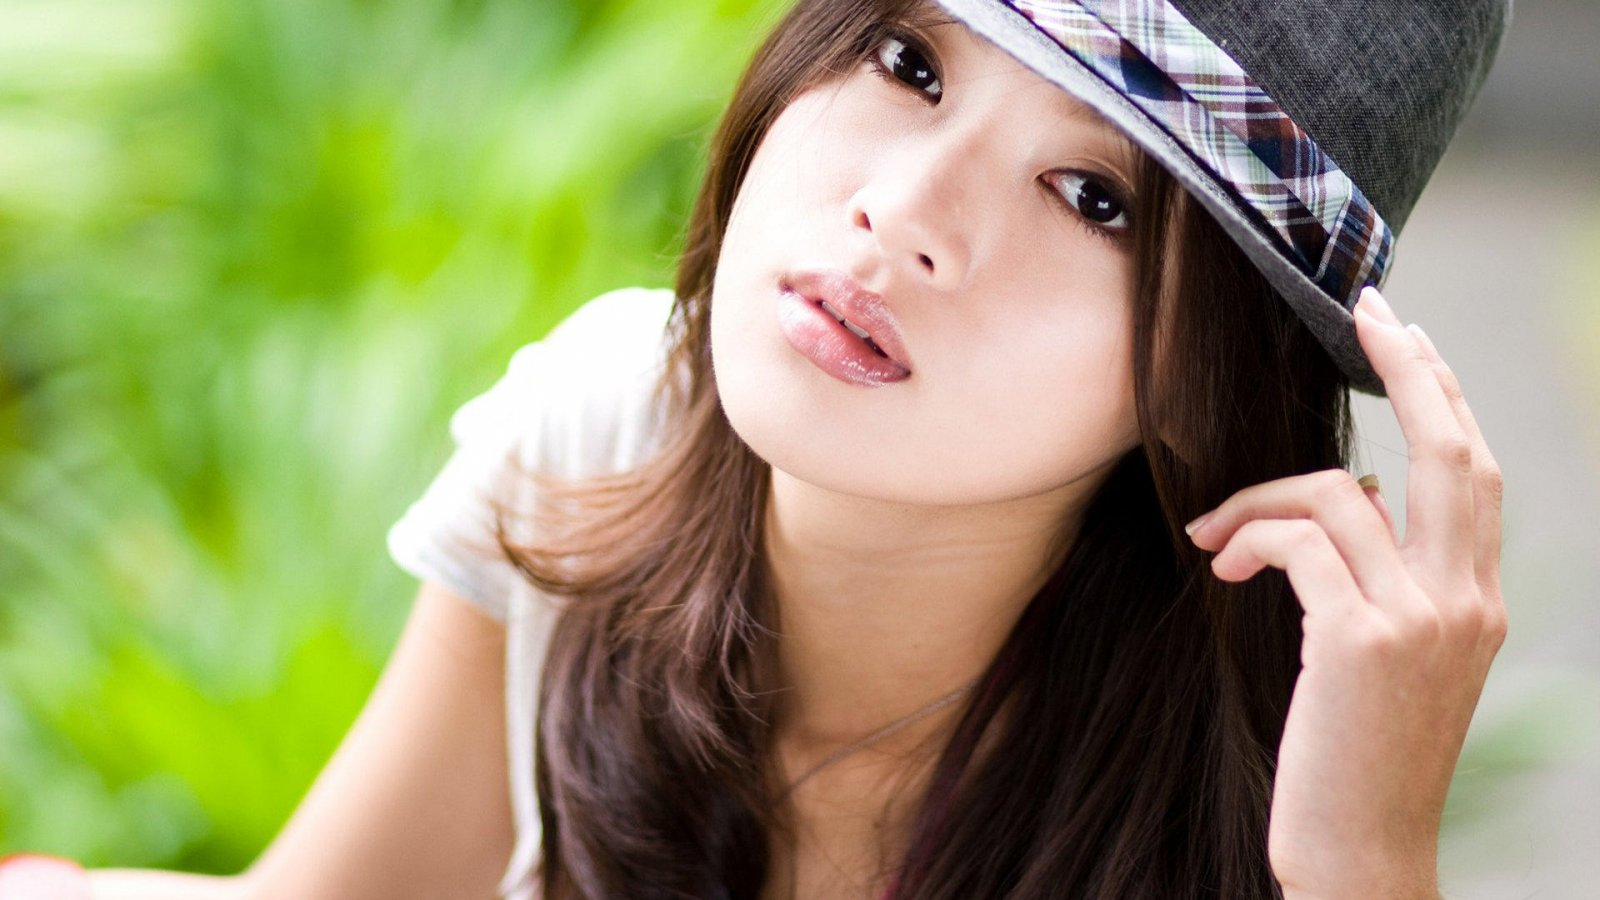 Girl Wallpapers Free Download Group (67+)